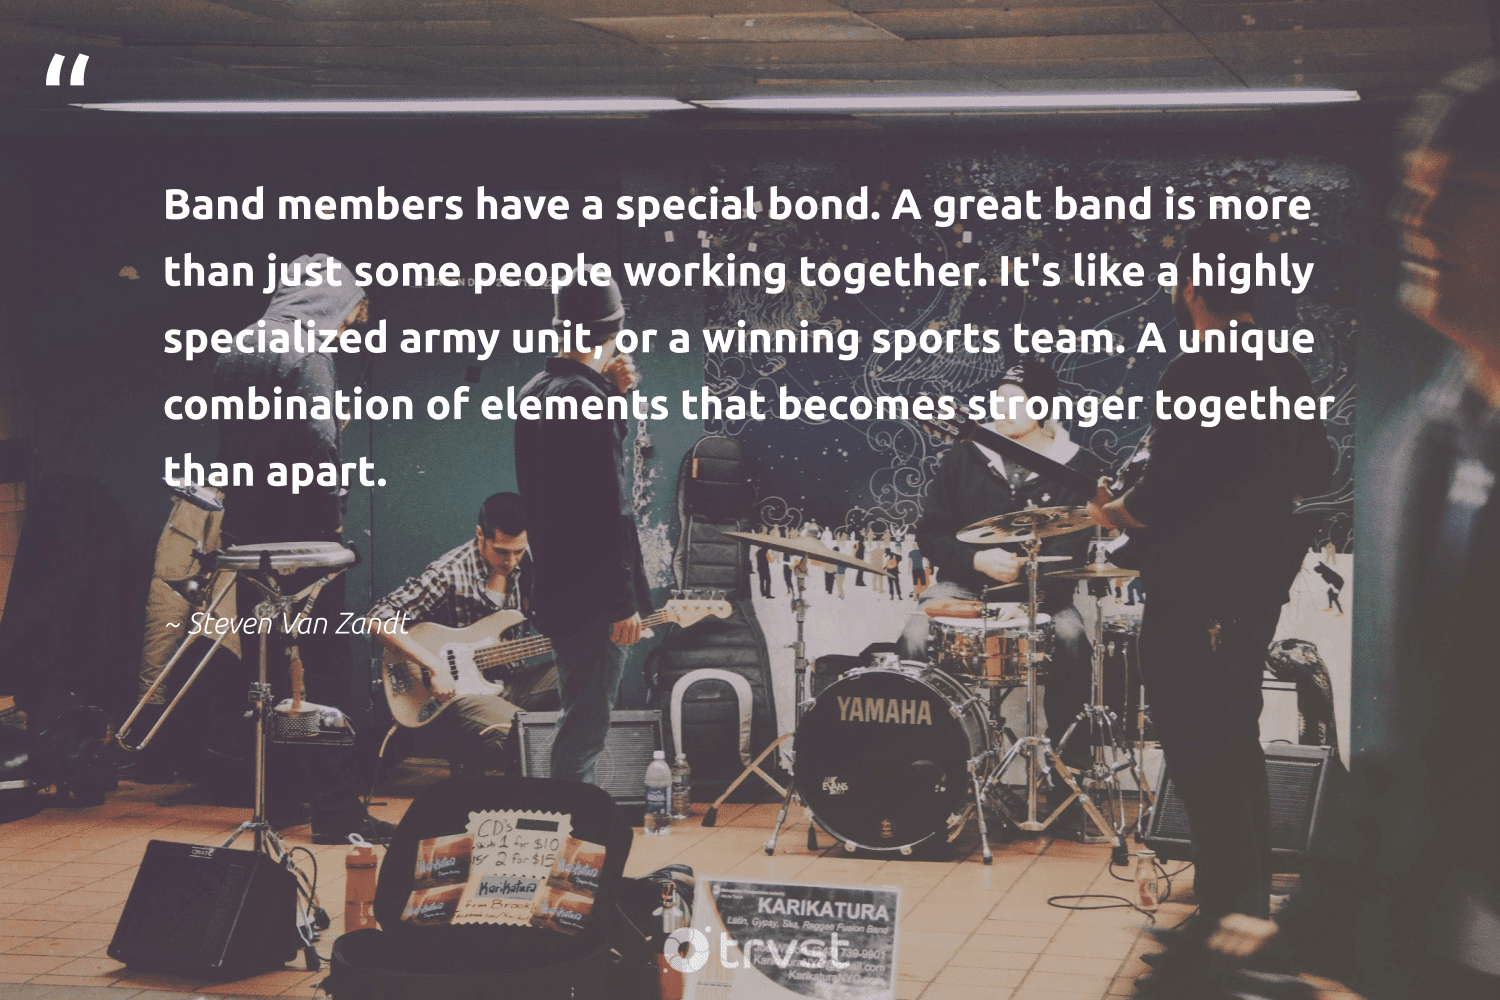 """""""Band members have a special bond. A great band is more than just some people working together. It's like a highly specialized army unit, or a winning sports team. A unique combination of elements that becomes stronger together than apart.""""  - Steven Van Zandt #trvst #quotes #workingtogether #begreat #dotherightthing #softskills #socialimpact #nevergiveup #bethechange #futureofwork #changetheworld #gogreen"""